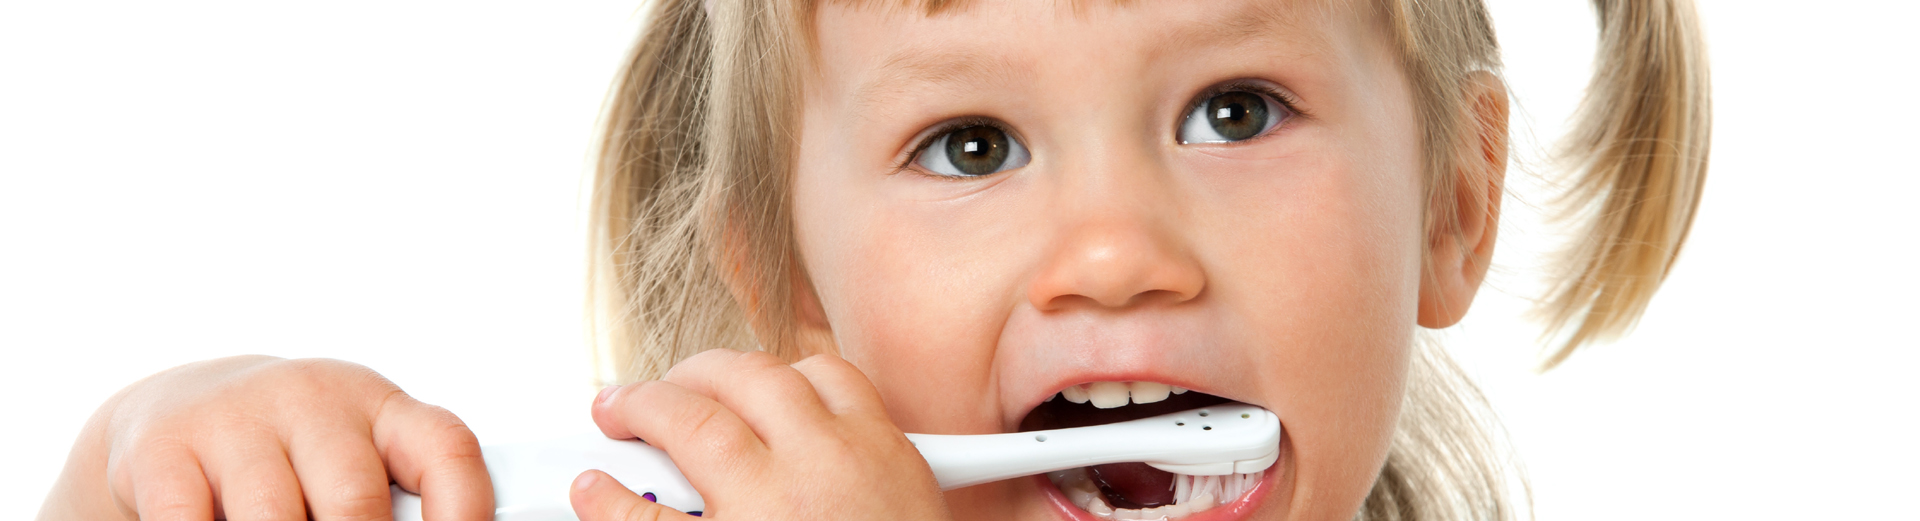 Asefa Salud Dental